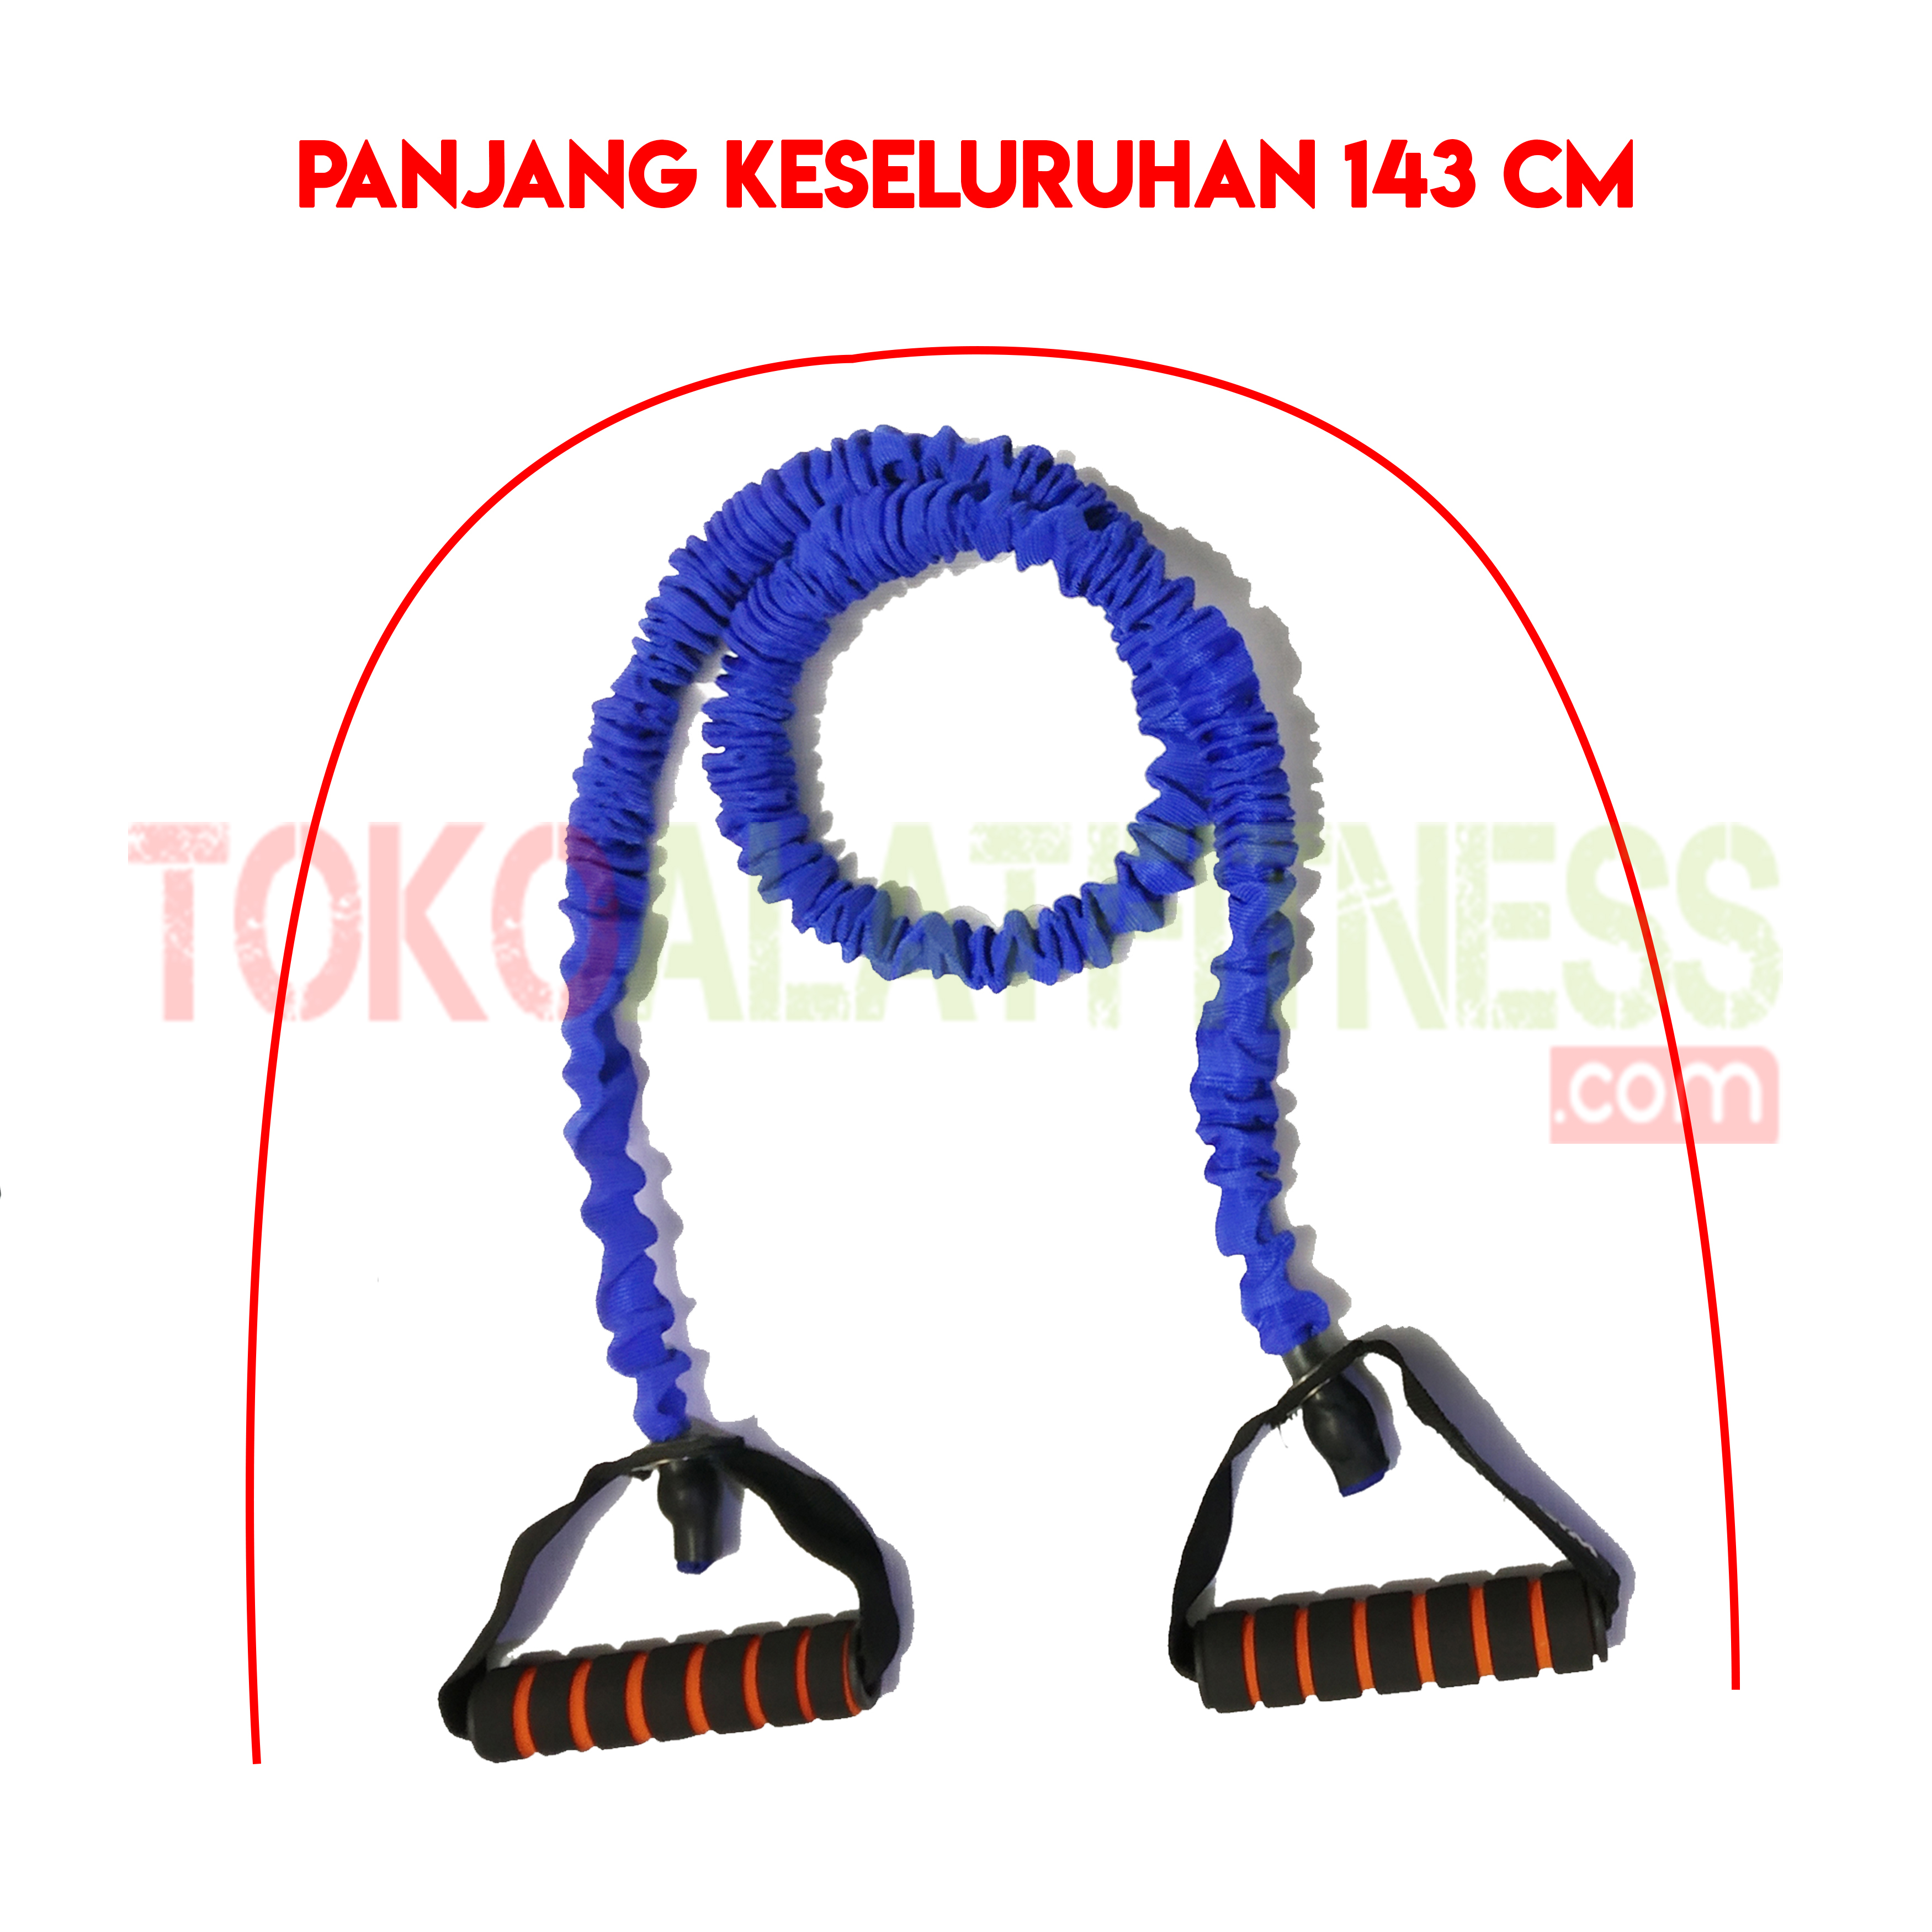 PALL ROPE BIRU SPEK WTM - Resistance Band / Strap with Handle Biru 25 Lbs Body Gym - ASSRB18B